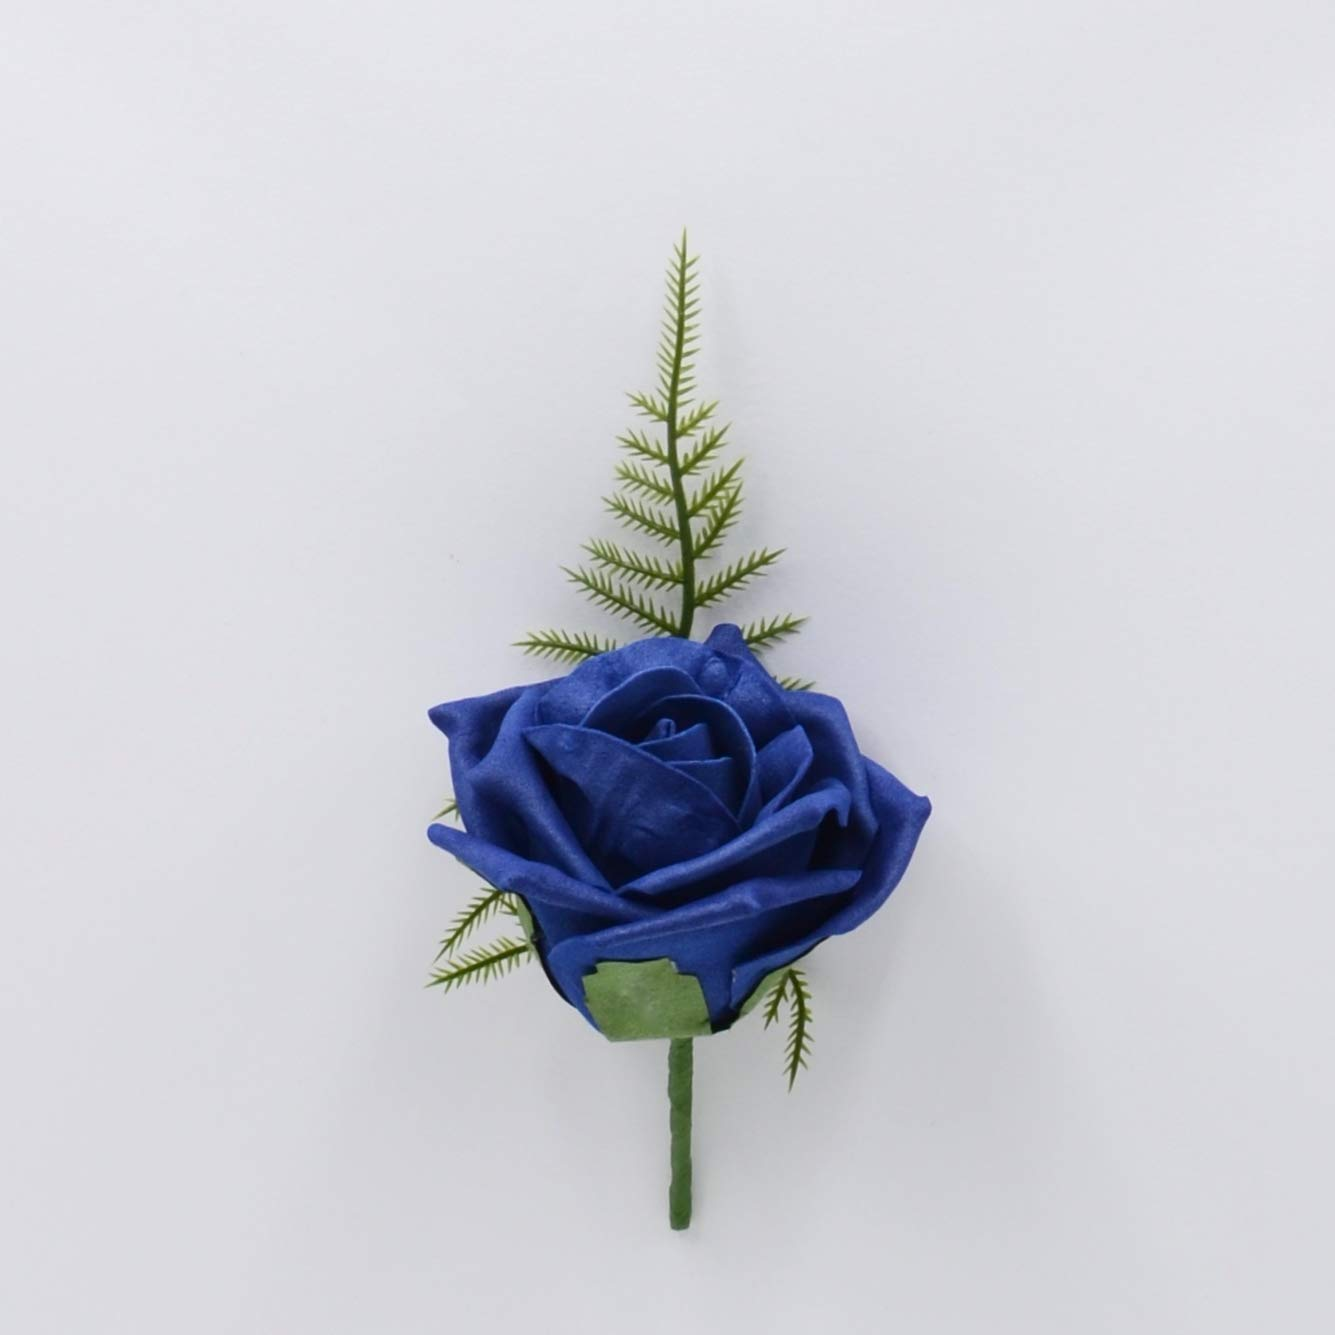 Artificial Wedding Flowers Hand-Made by Petals Polly, Foam Rose Buttonhole in Navy Blue PETALS POLLY FLOWERS